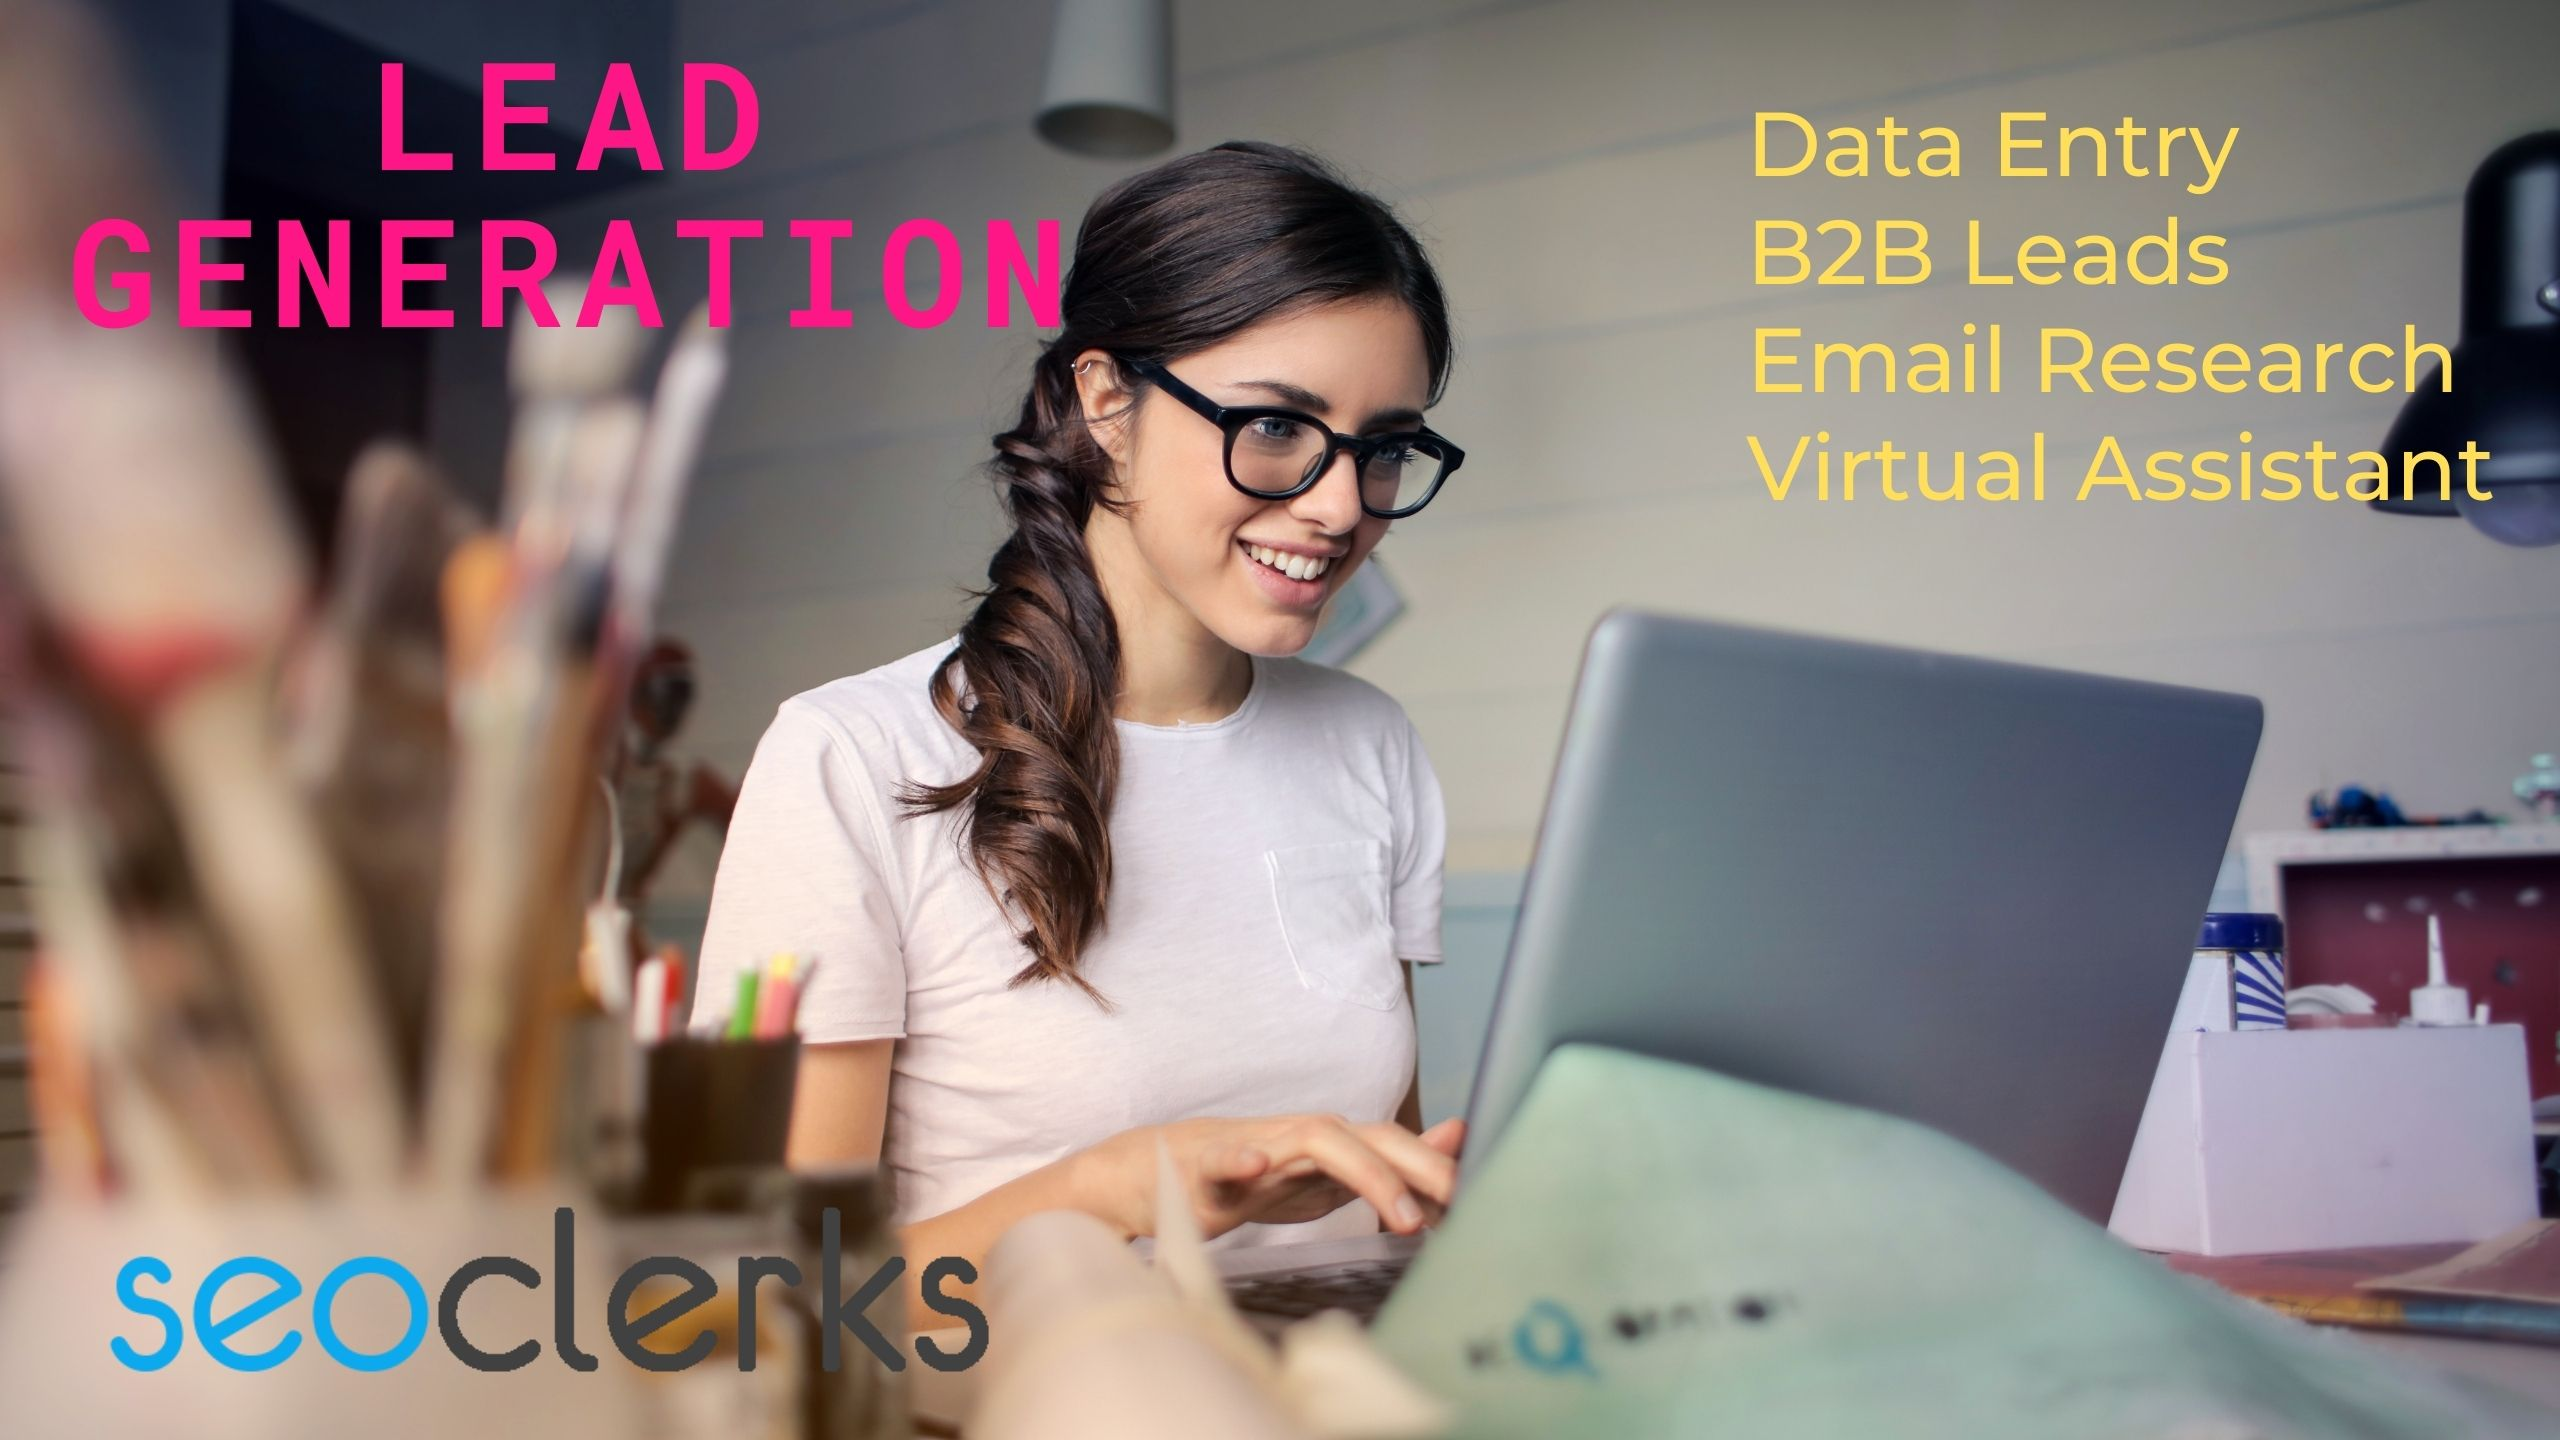 I will be your virtual assistant for data entry and web research perfectly